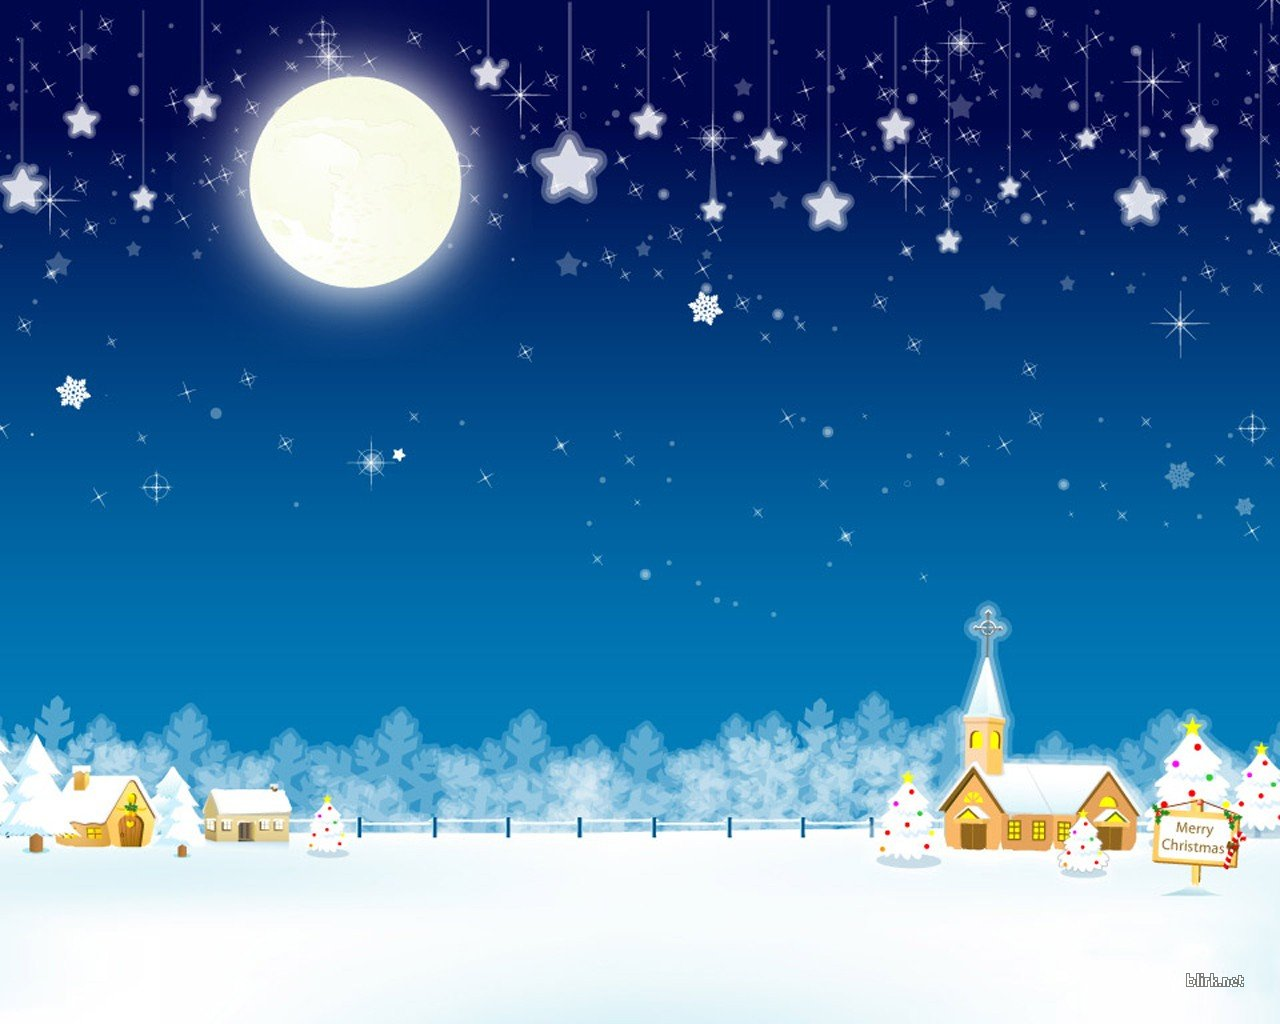 Group Of Snowing Christmas Wallpaper Village